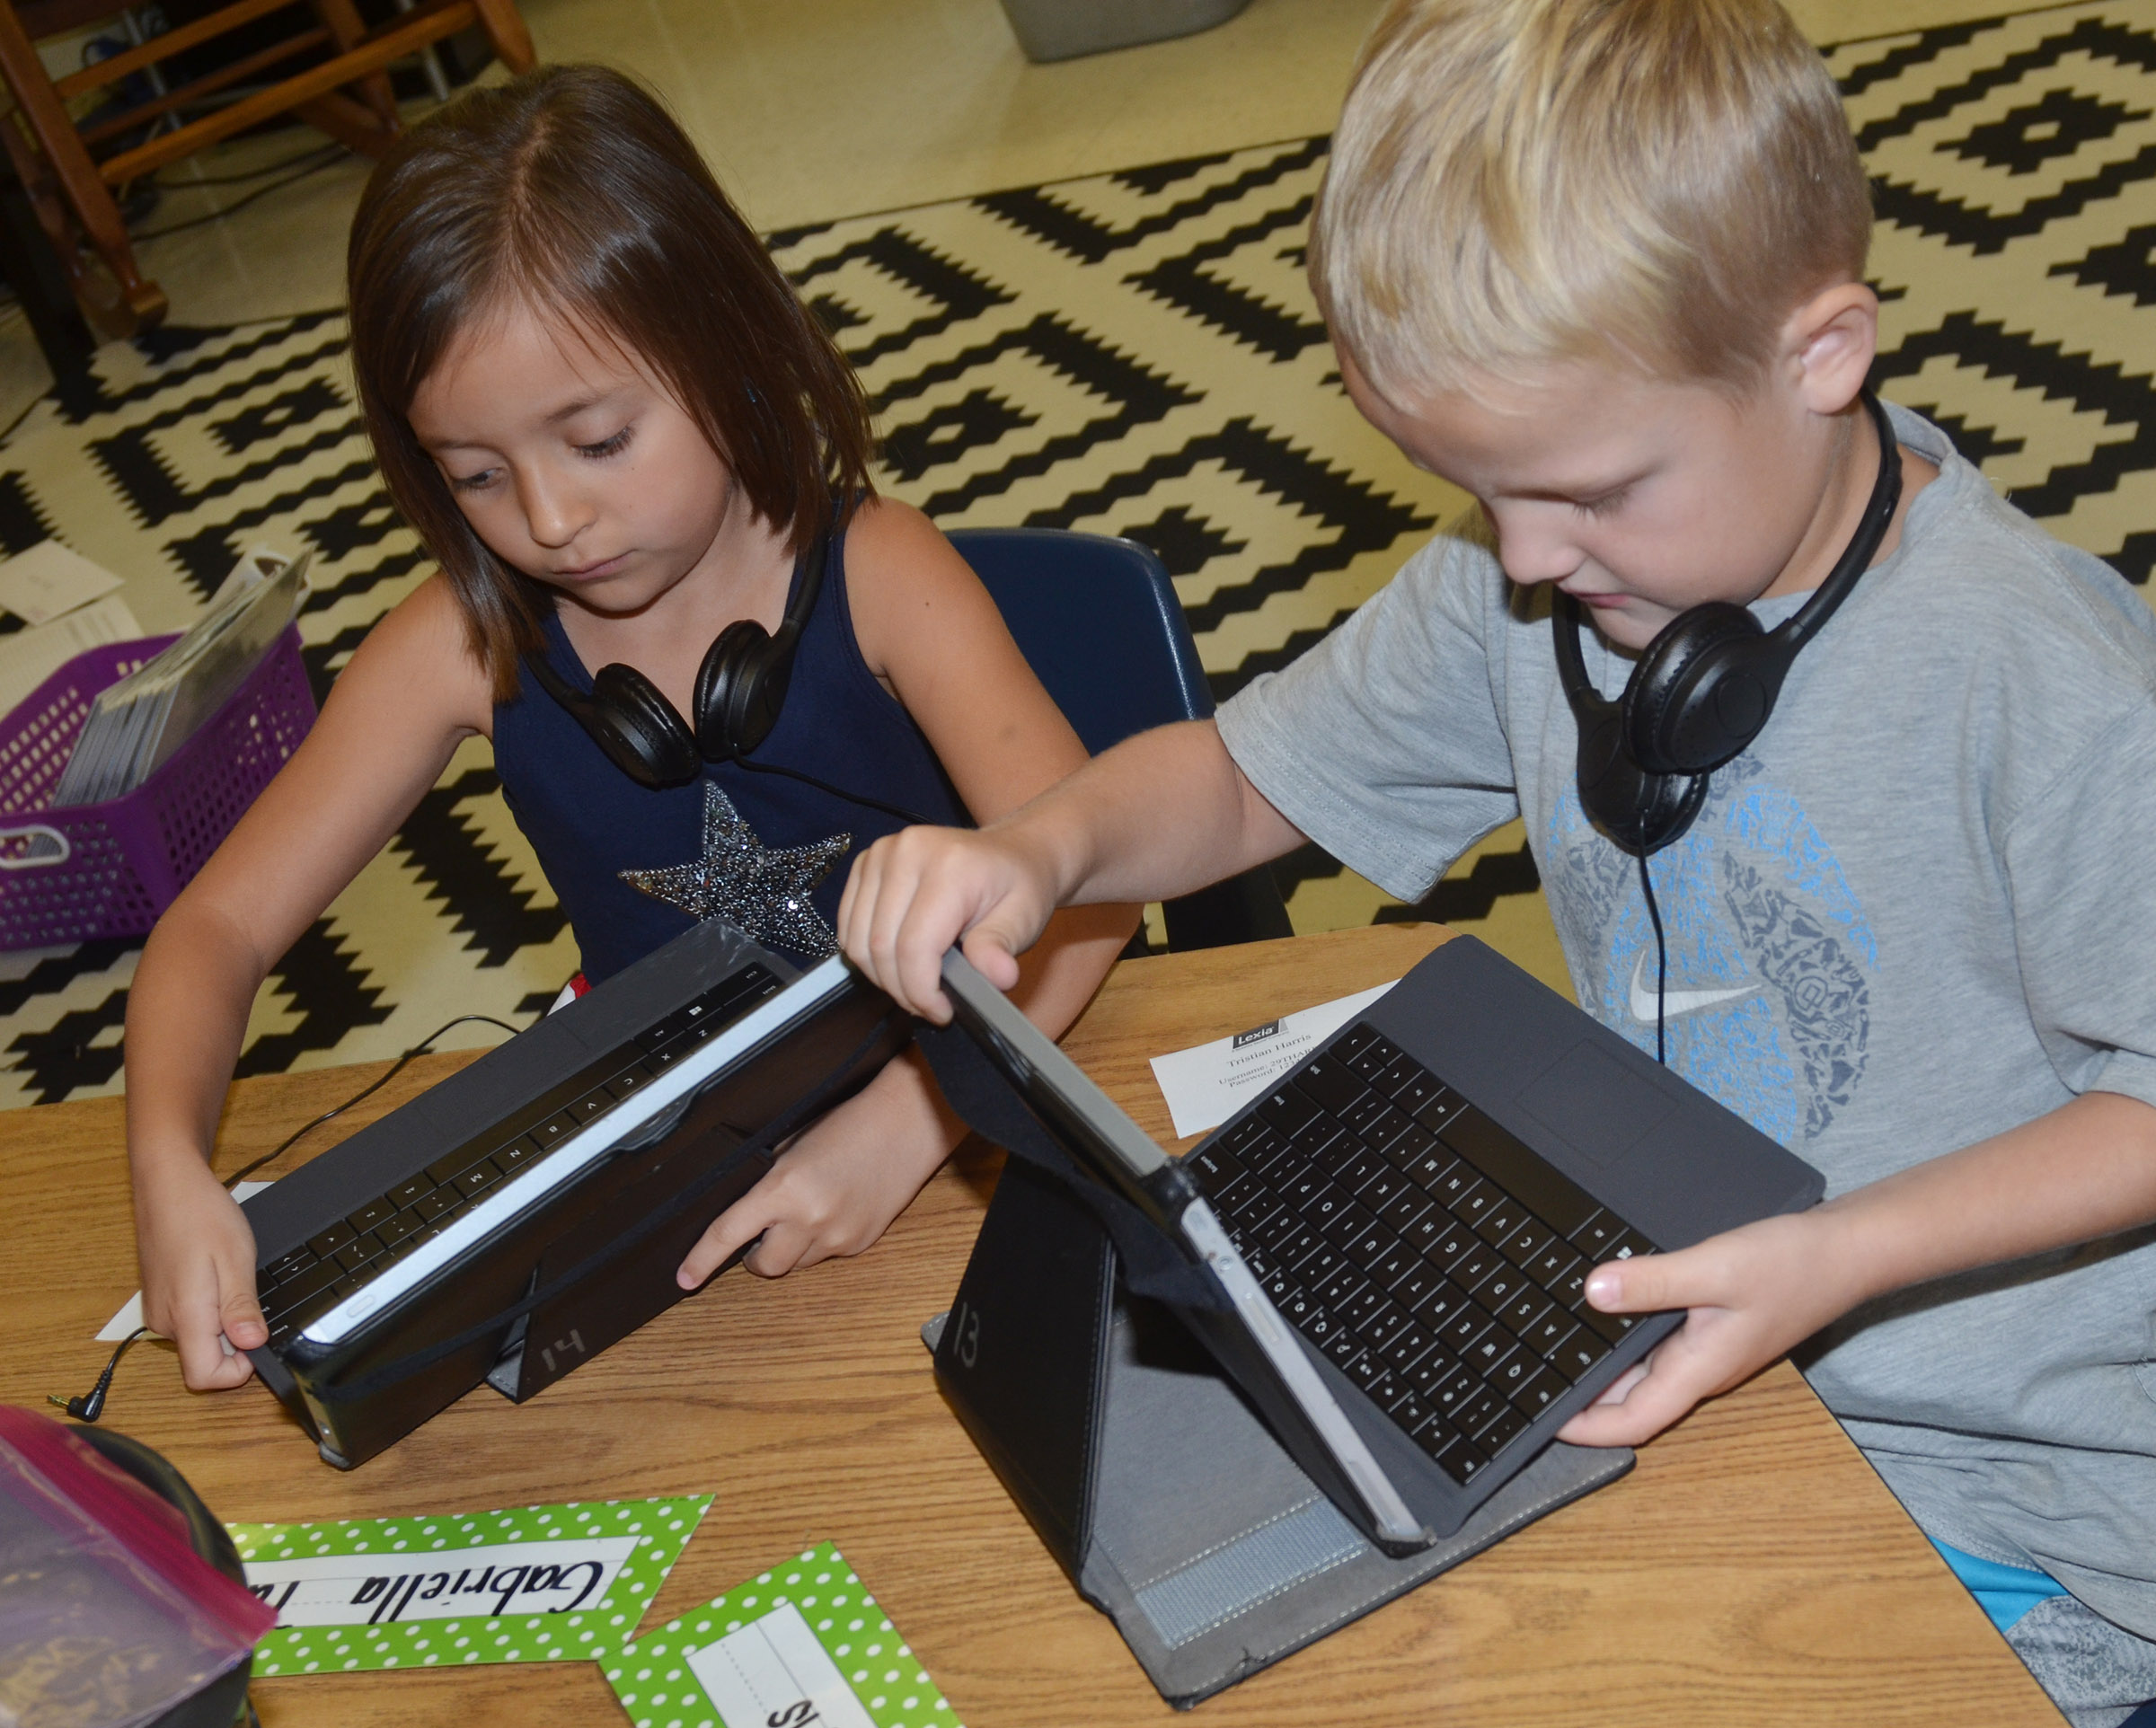 CES first-graders Gabriella Tate, at left, and Tristian Harris open their tablets.